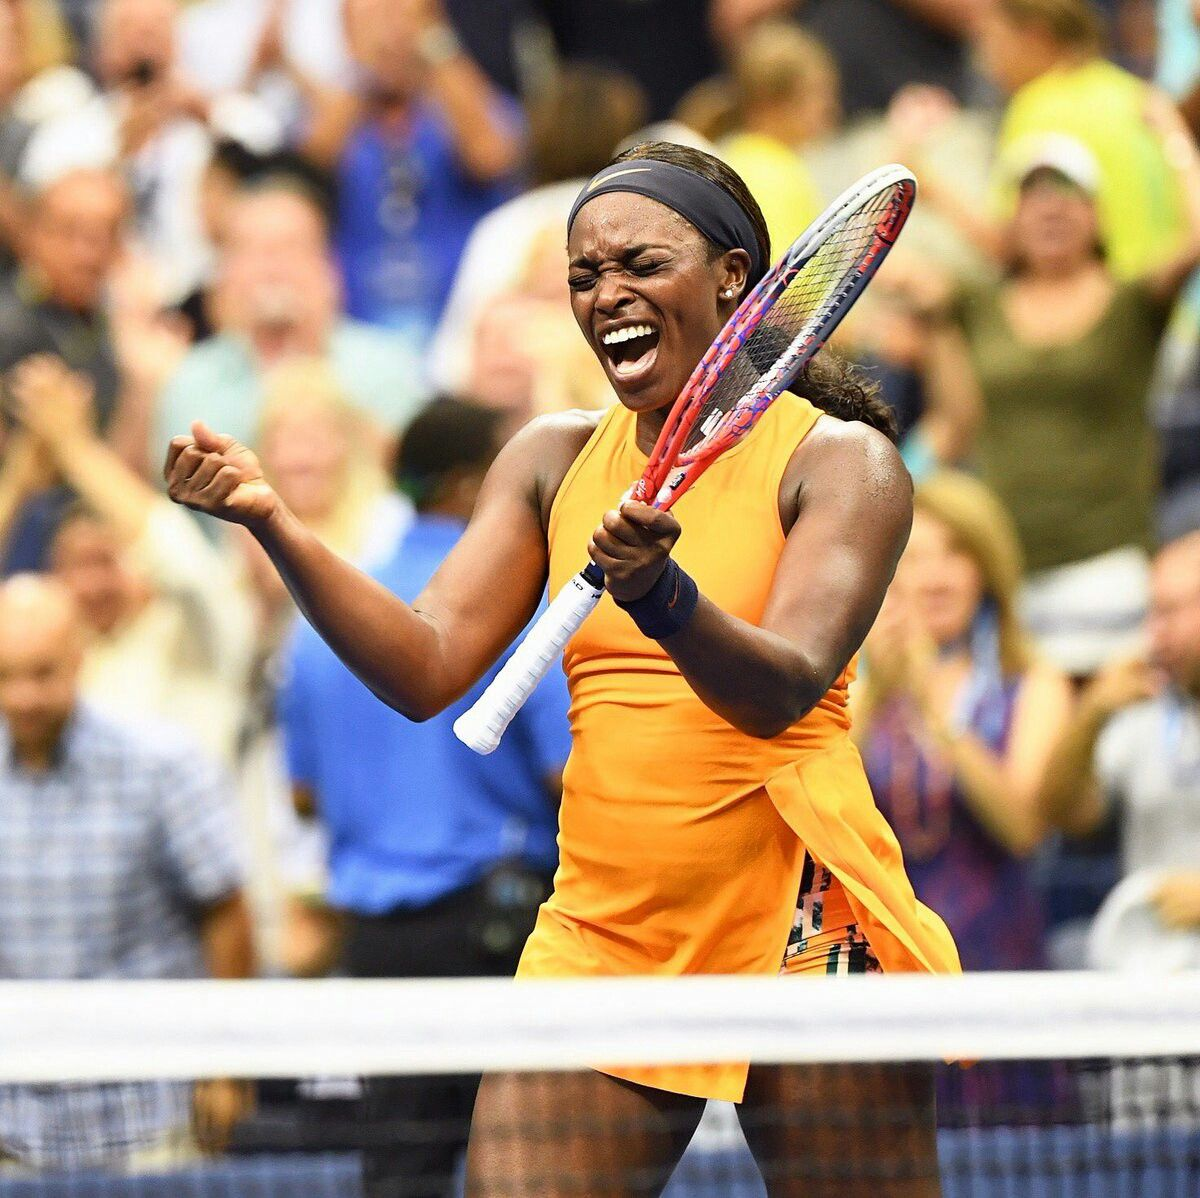 Stephens Sloane stephens, Best tennis rackets, Serena